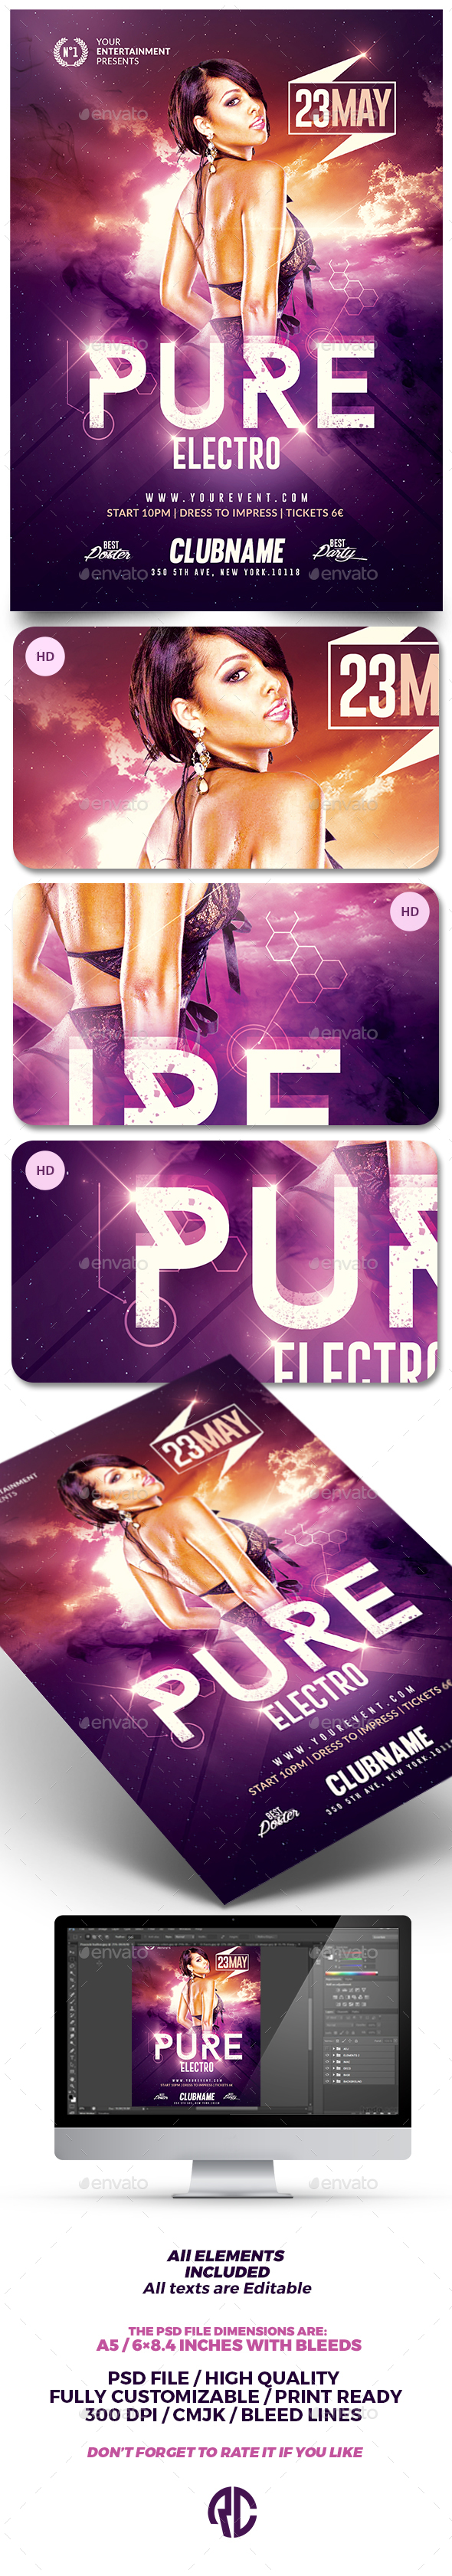 Pure Electro Flyer | Psd Template v3 - Clubs & Parties Events